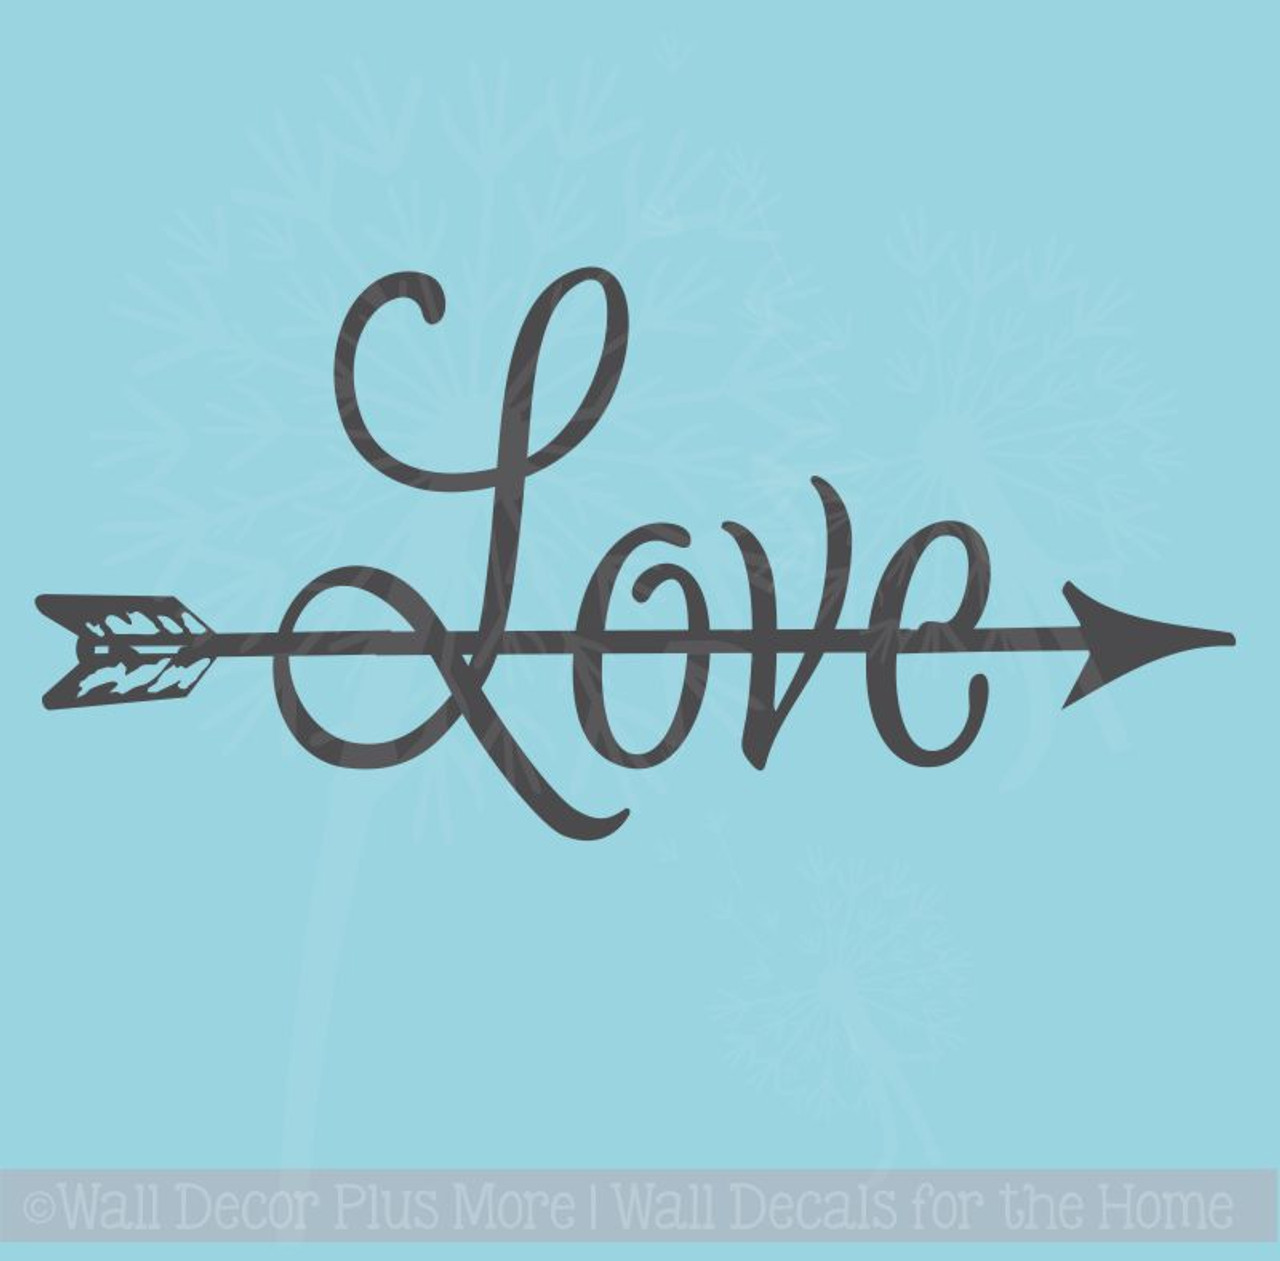 Amazon Com Fashion Love Arrow Decal Living Room Bedroom Vinyl Carving Wall Decal Sticker For Home Decoration Love Arrow Arts Crafts Sewing